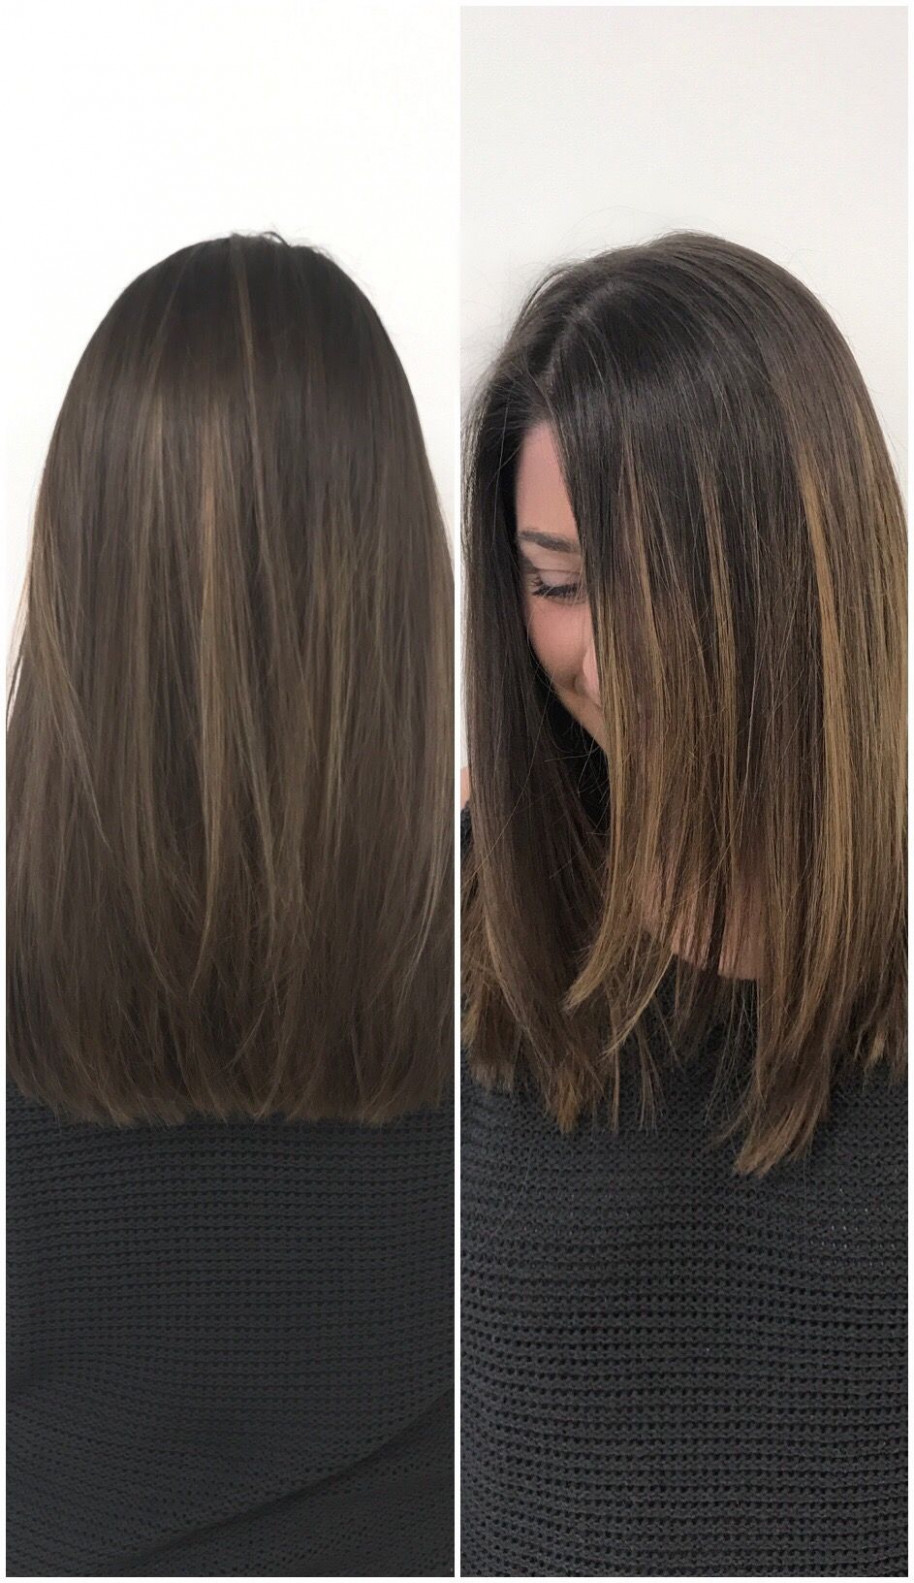 The perfect fall haircut and color for medium length brown hair